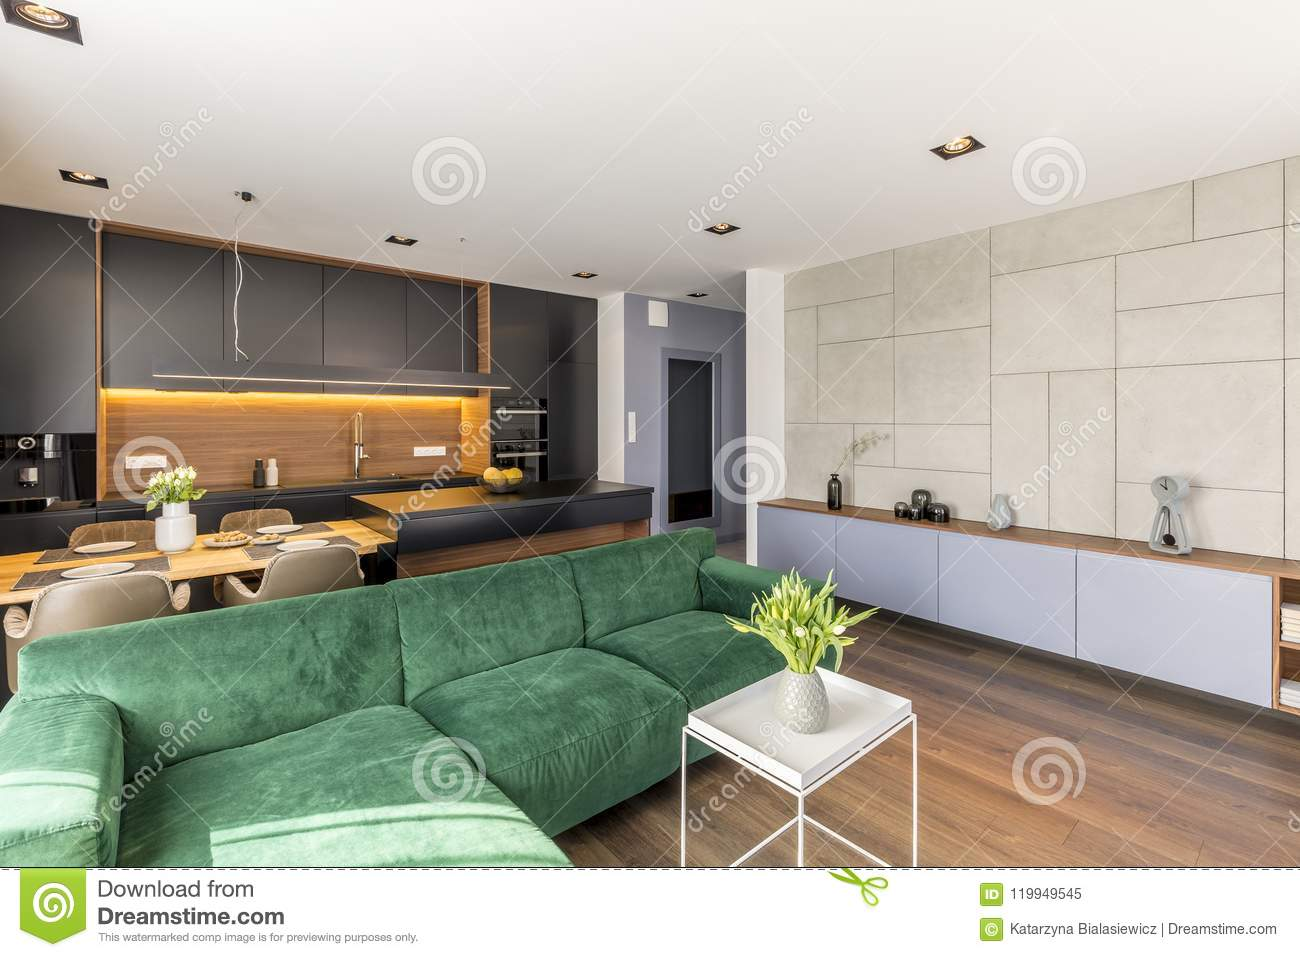 Velvet Couch Placed In Open Space Living Room And Kitchen